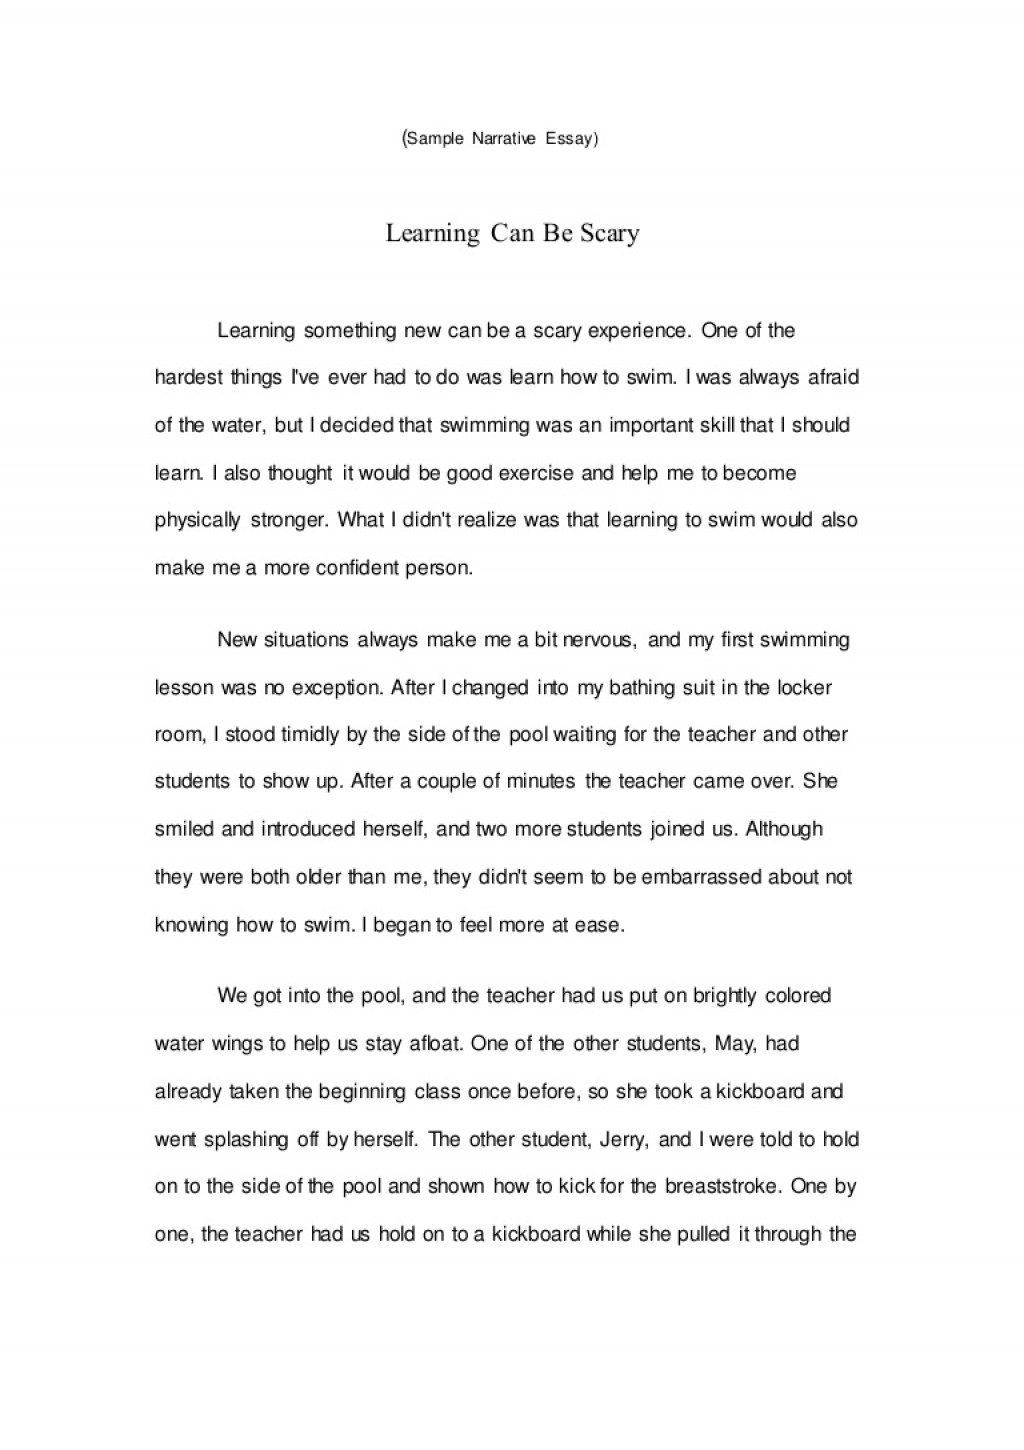 023 Essay Example Samplenarrativeessay Lva1 App6891 Thumbnail On Stupendous Fear Short Of Failure College Public Speaking Afraid Snakes Large